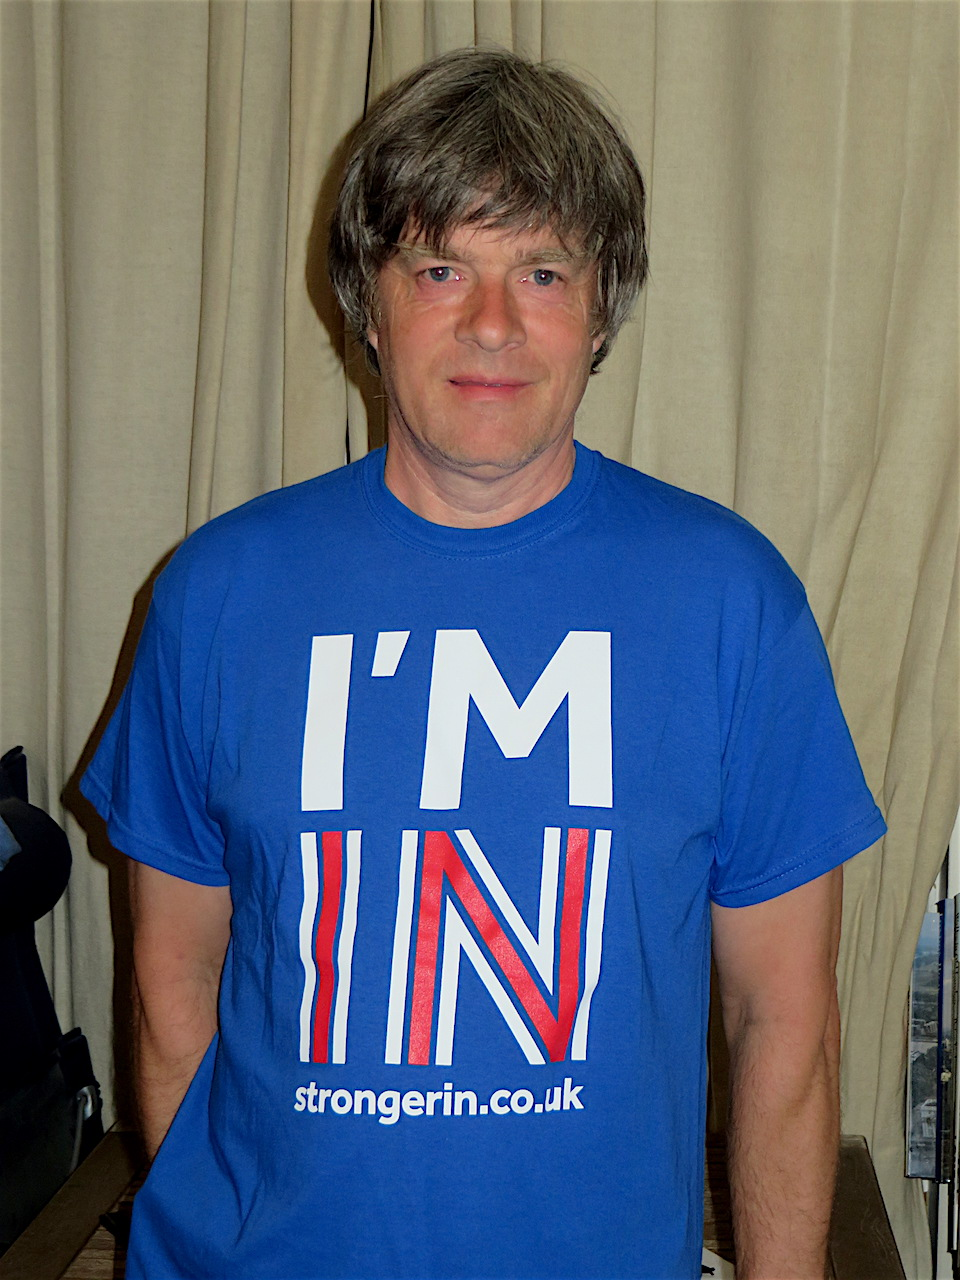 Andy Worthington showing his support for the campaign for Britain to remain in the EU.